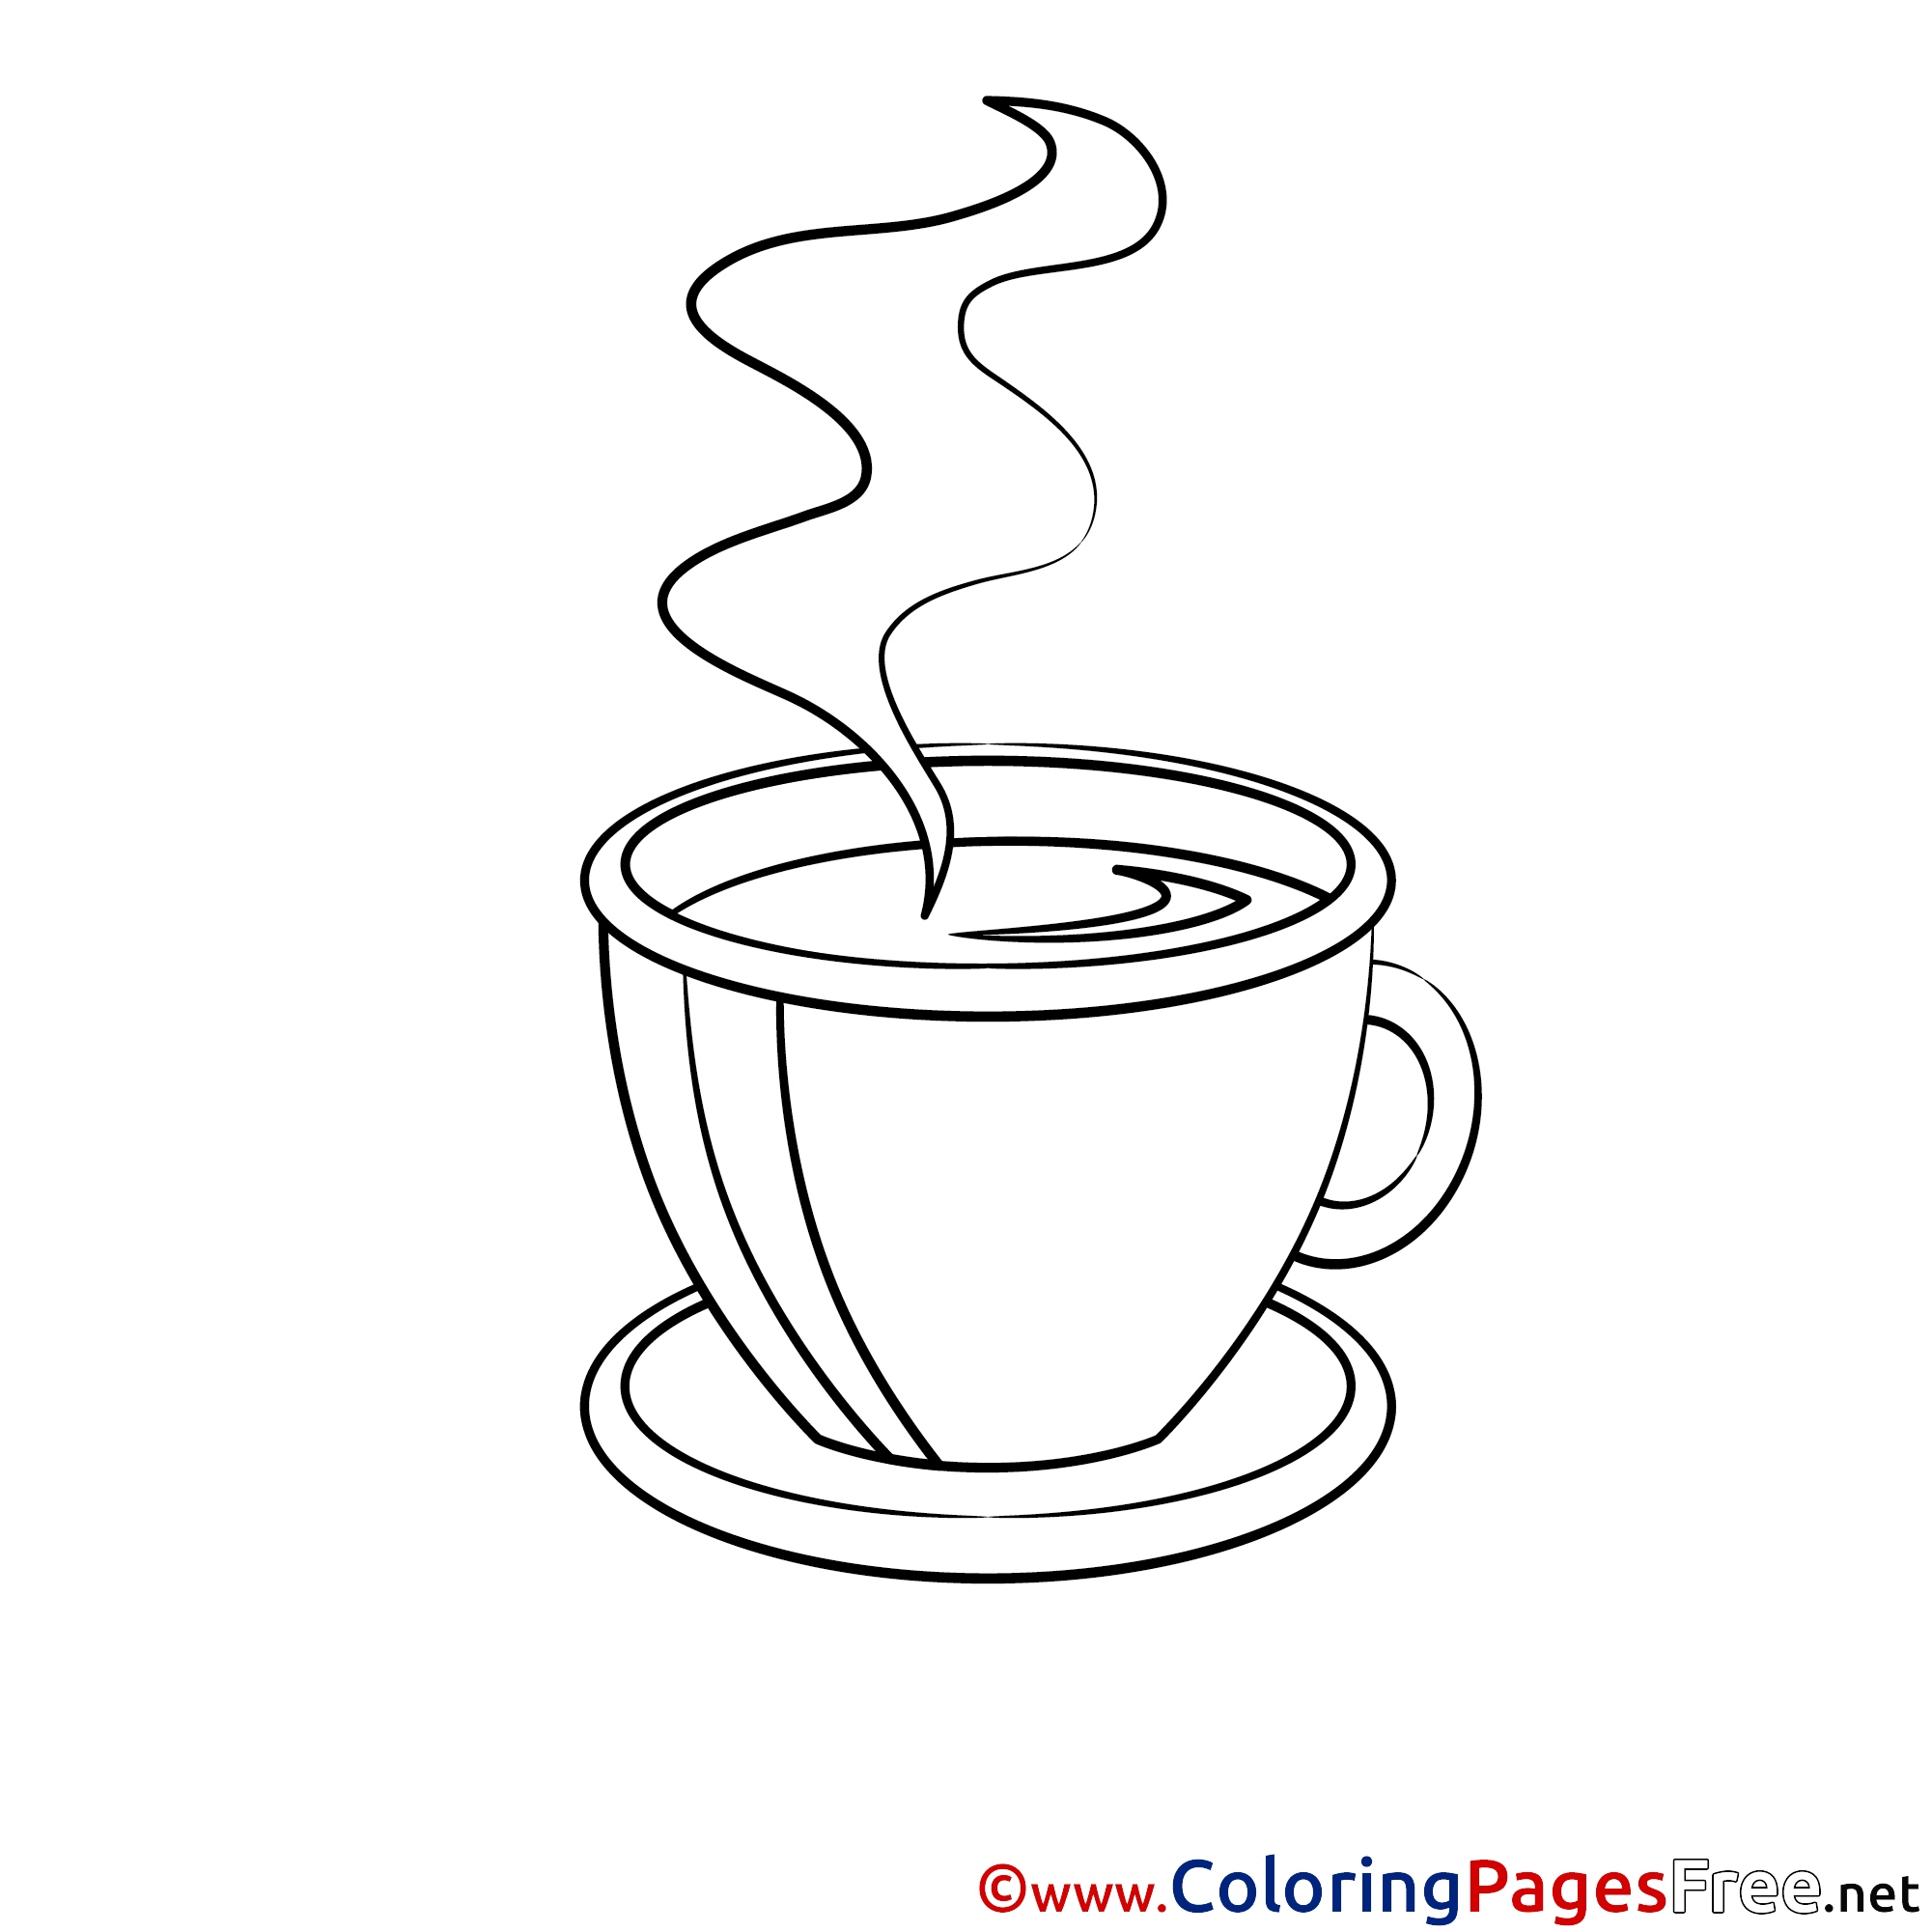 Cup of coffee free printable coloring sheets for Cup picture for colouring